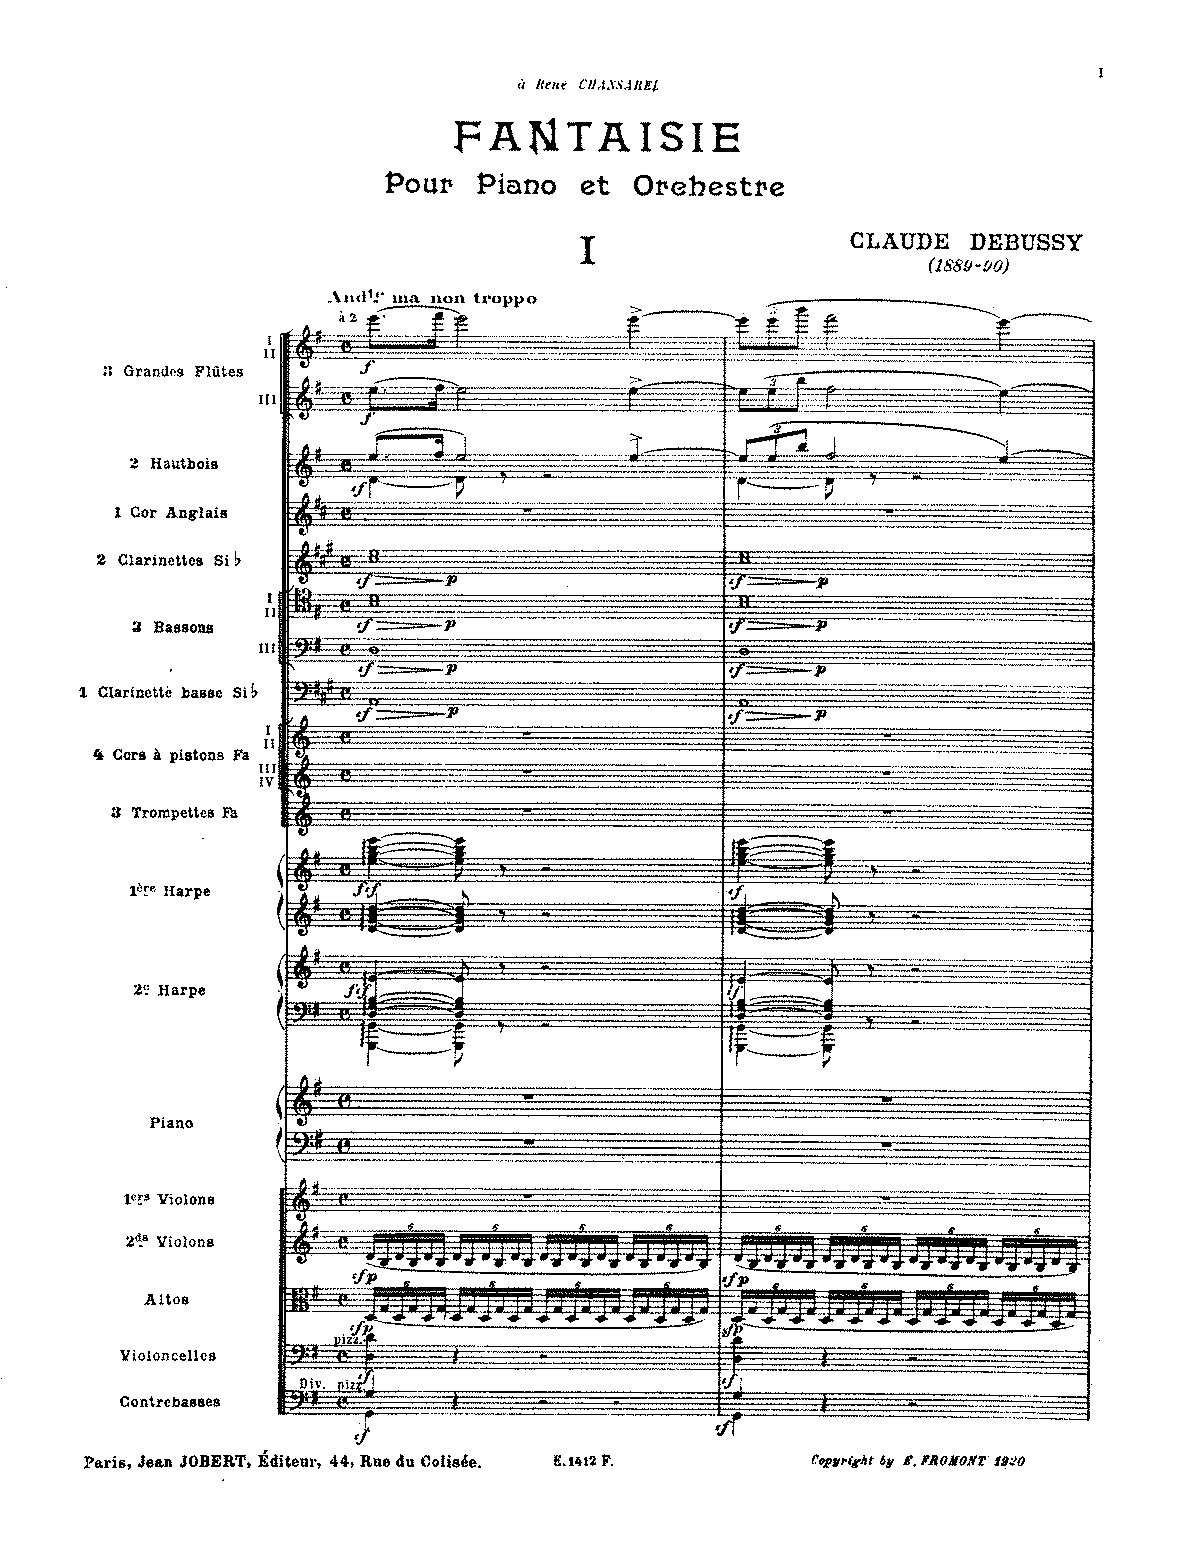 Debussy - Fantaisie for piano and orchestra (orch. score).pdf